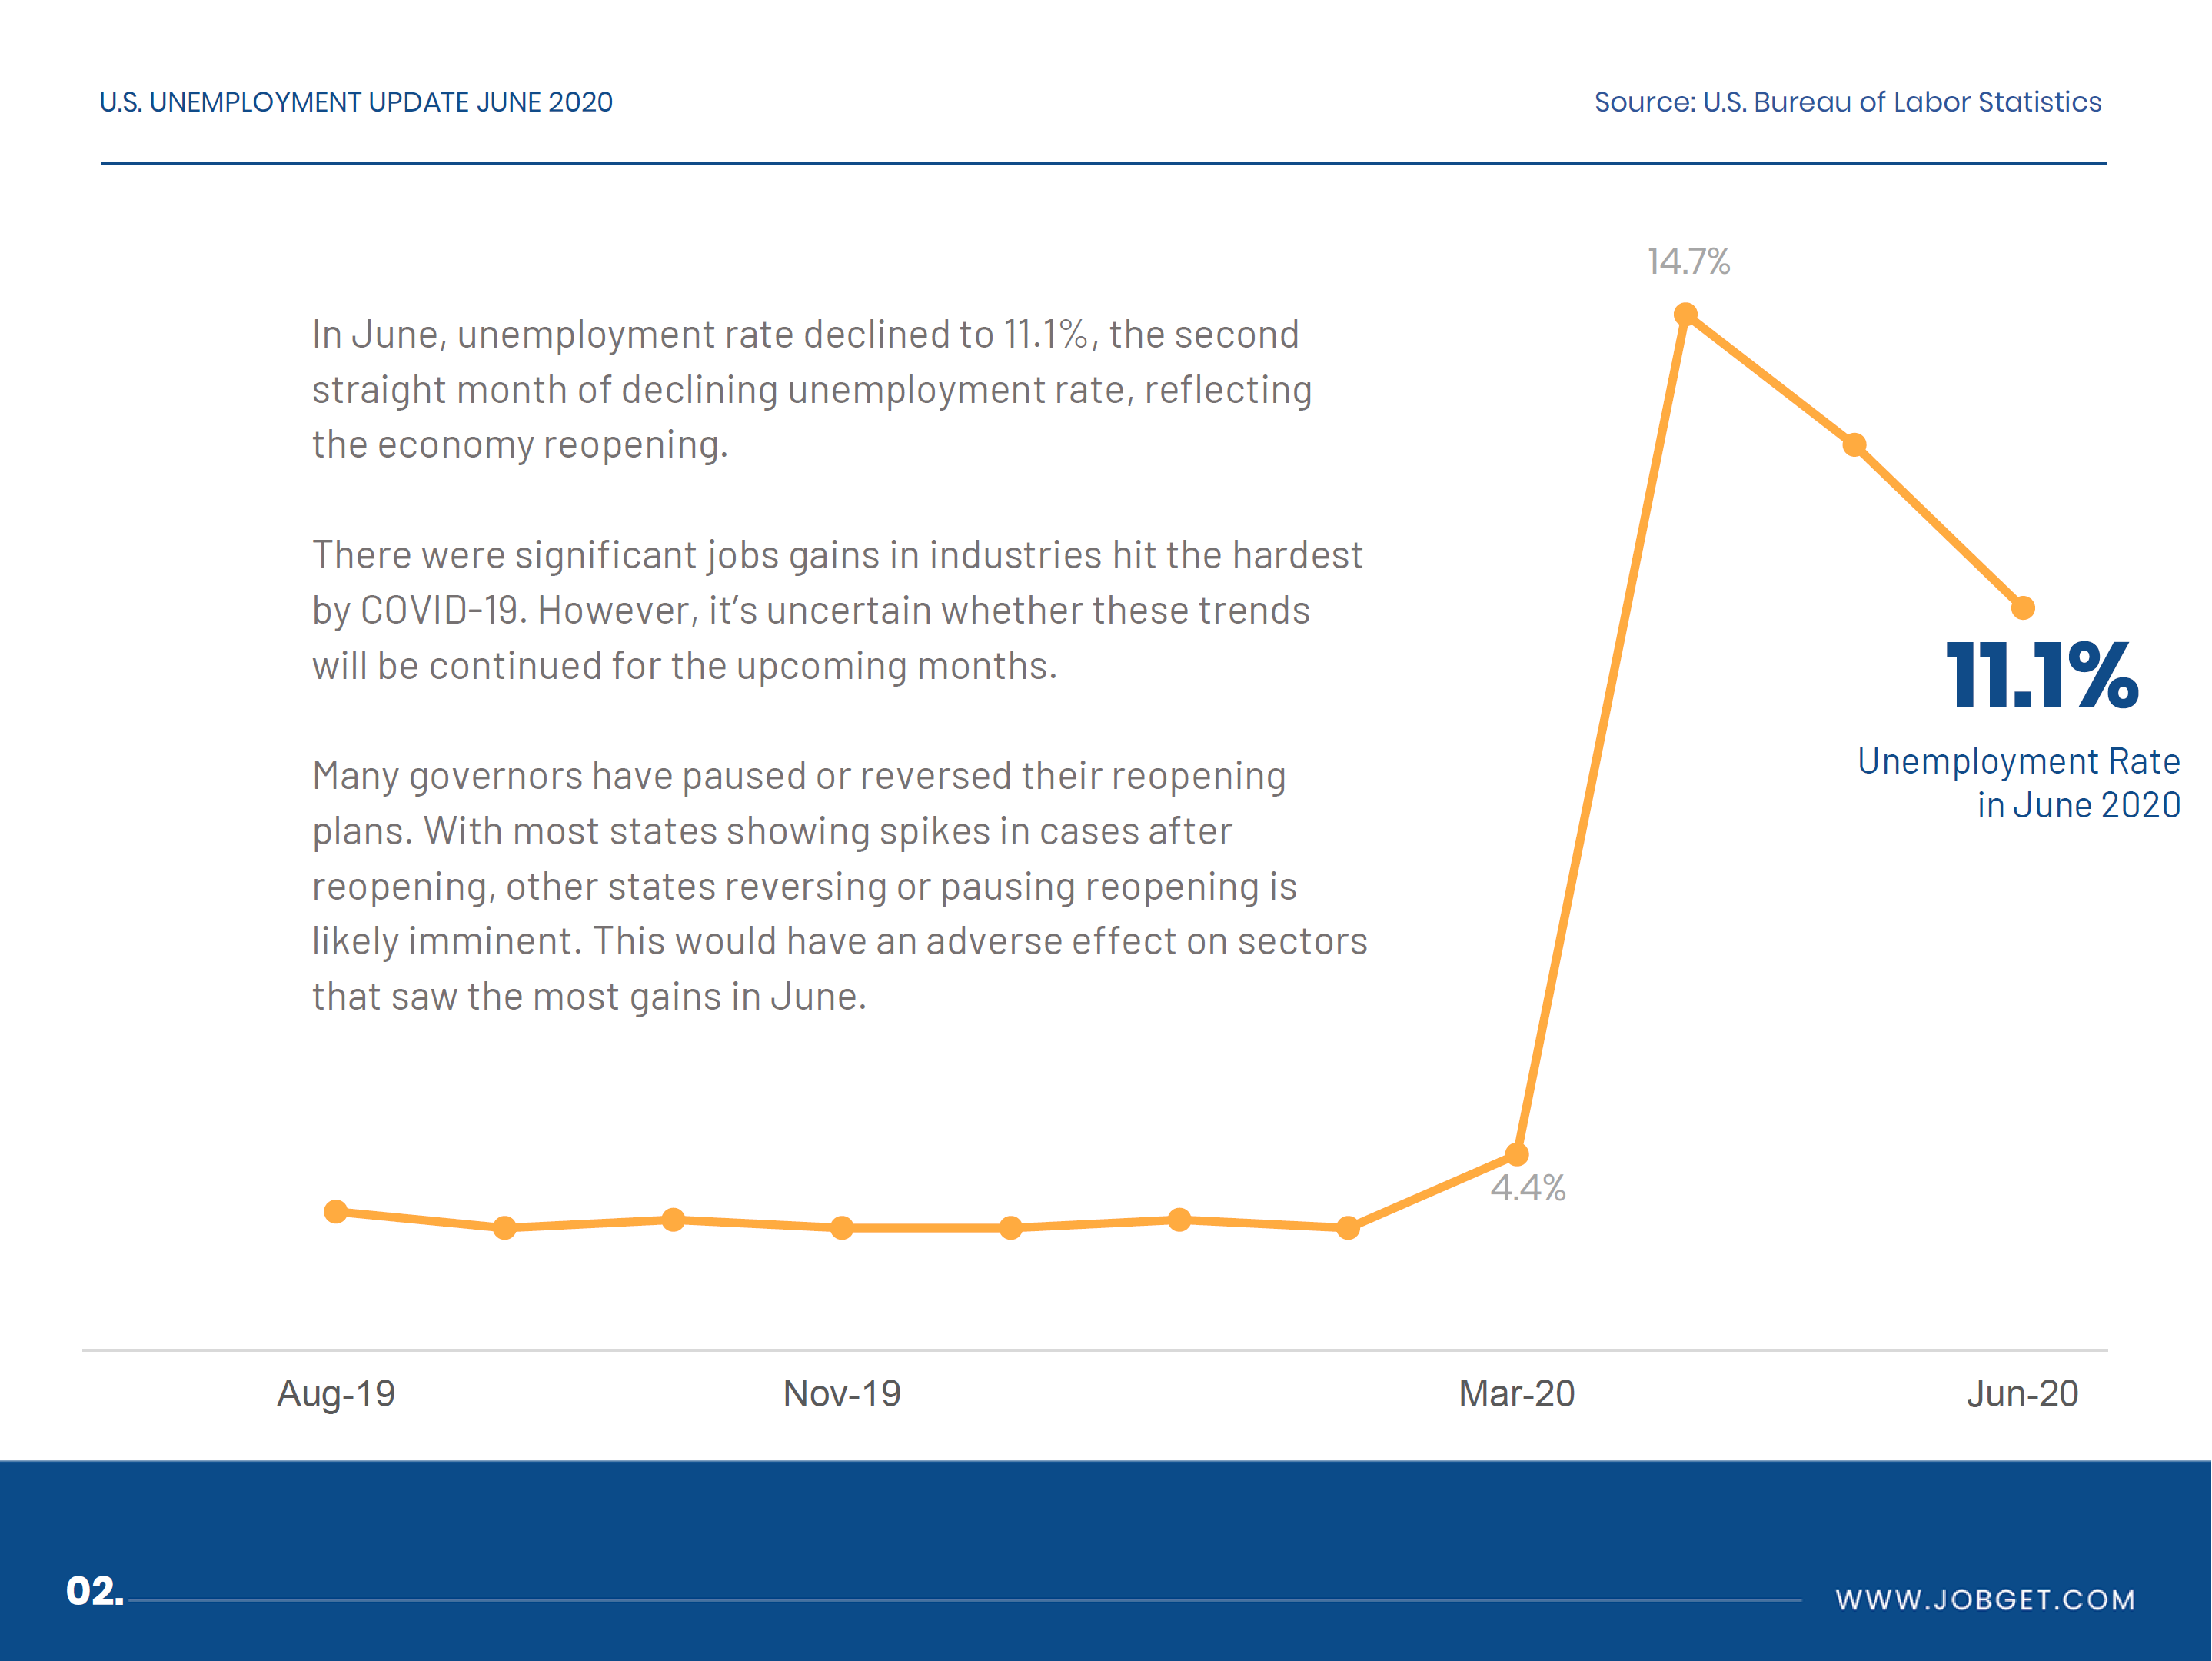 Unemployment Rate in June